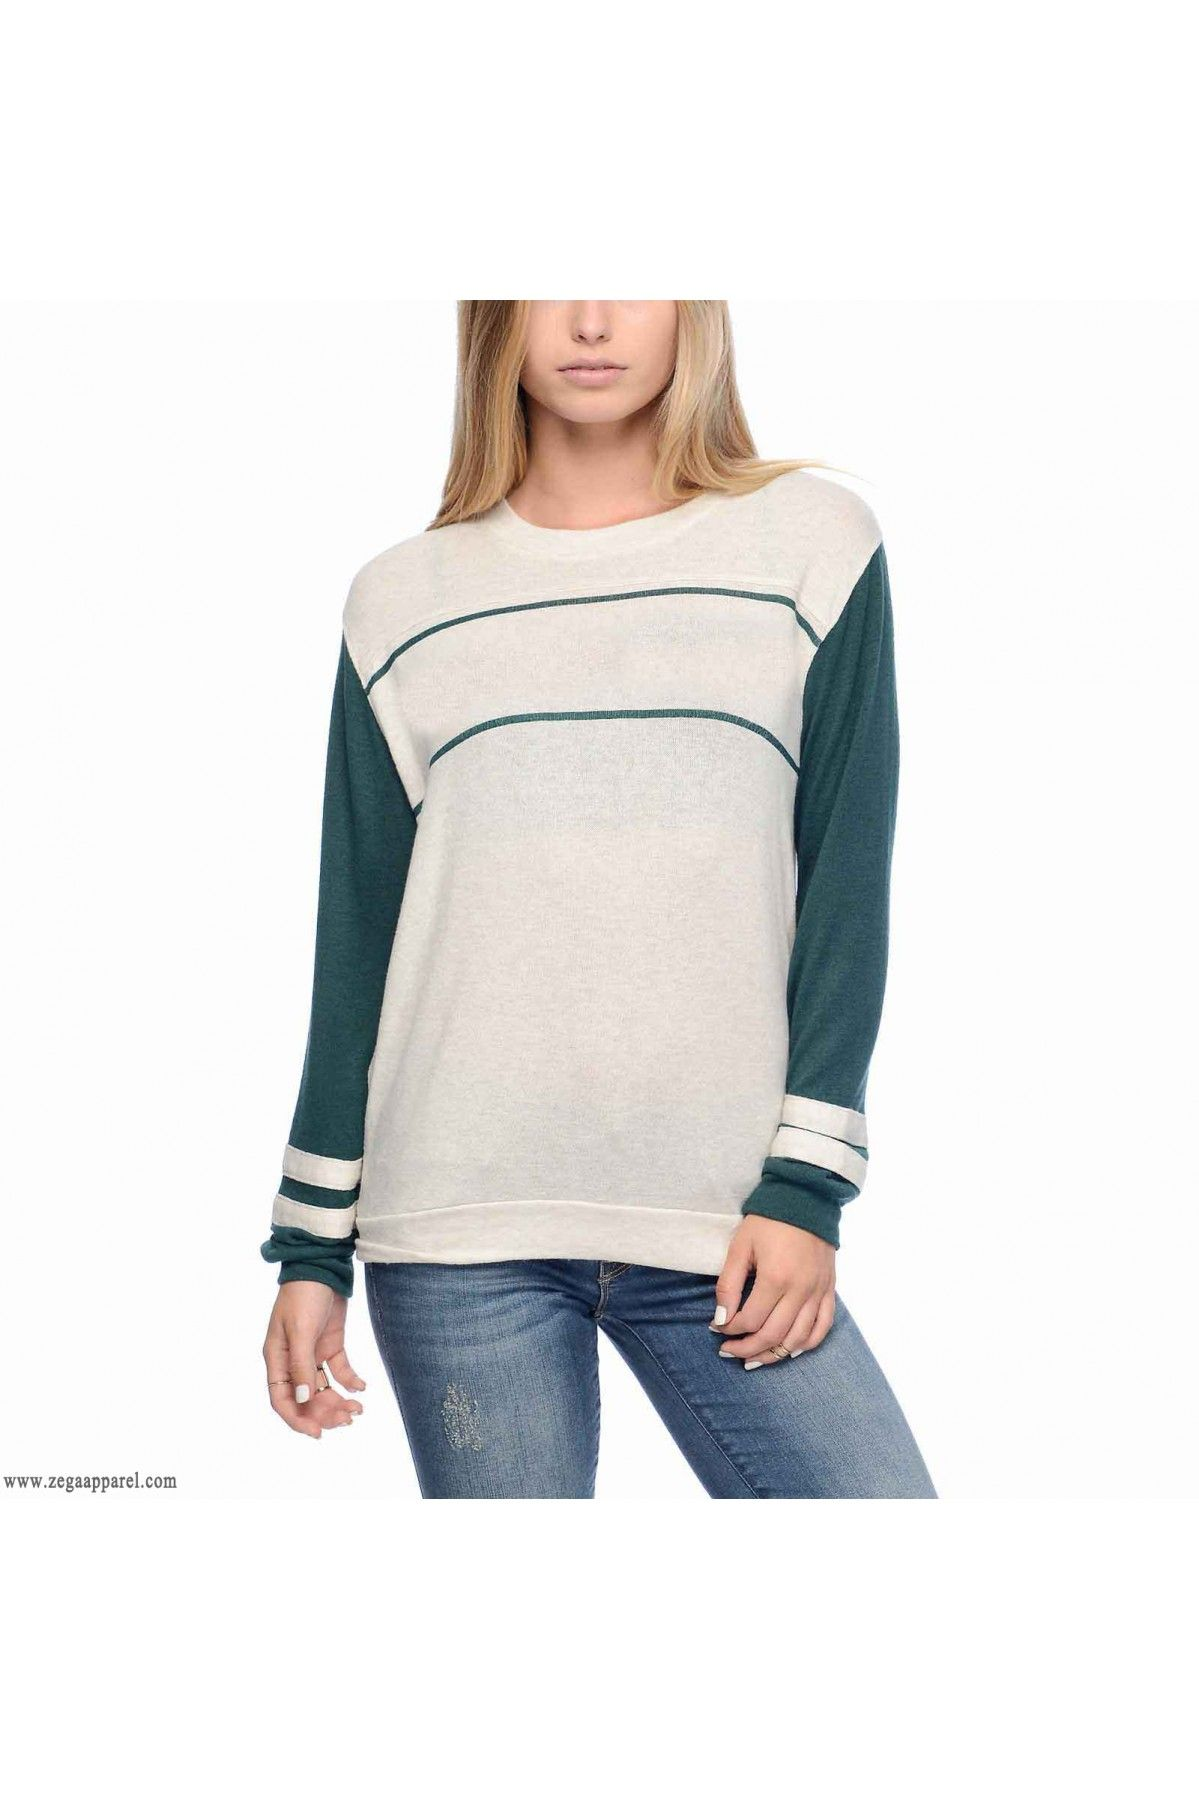 f3f85f00 The Custom Made Zega Apparel Cut and Sew Special Sweat Shirts are made to  order from the start, customers can have any sort of customization in any  ...